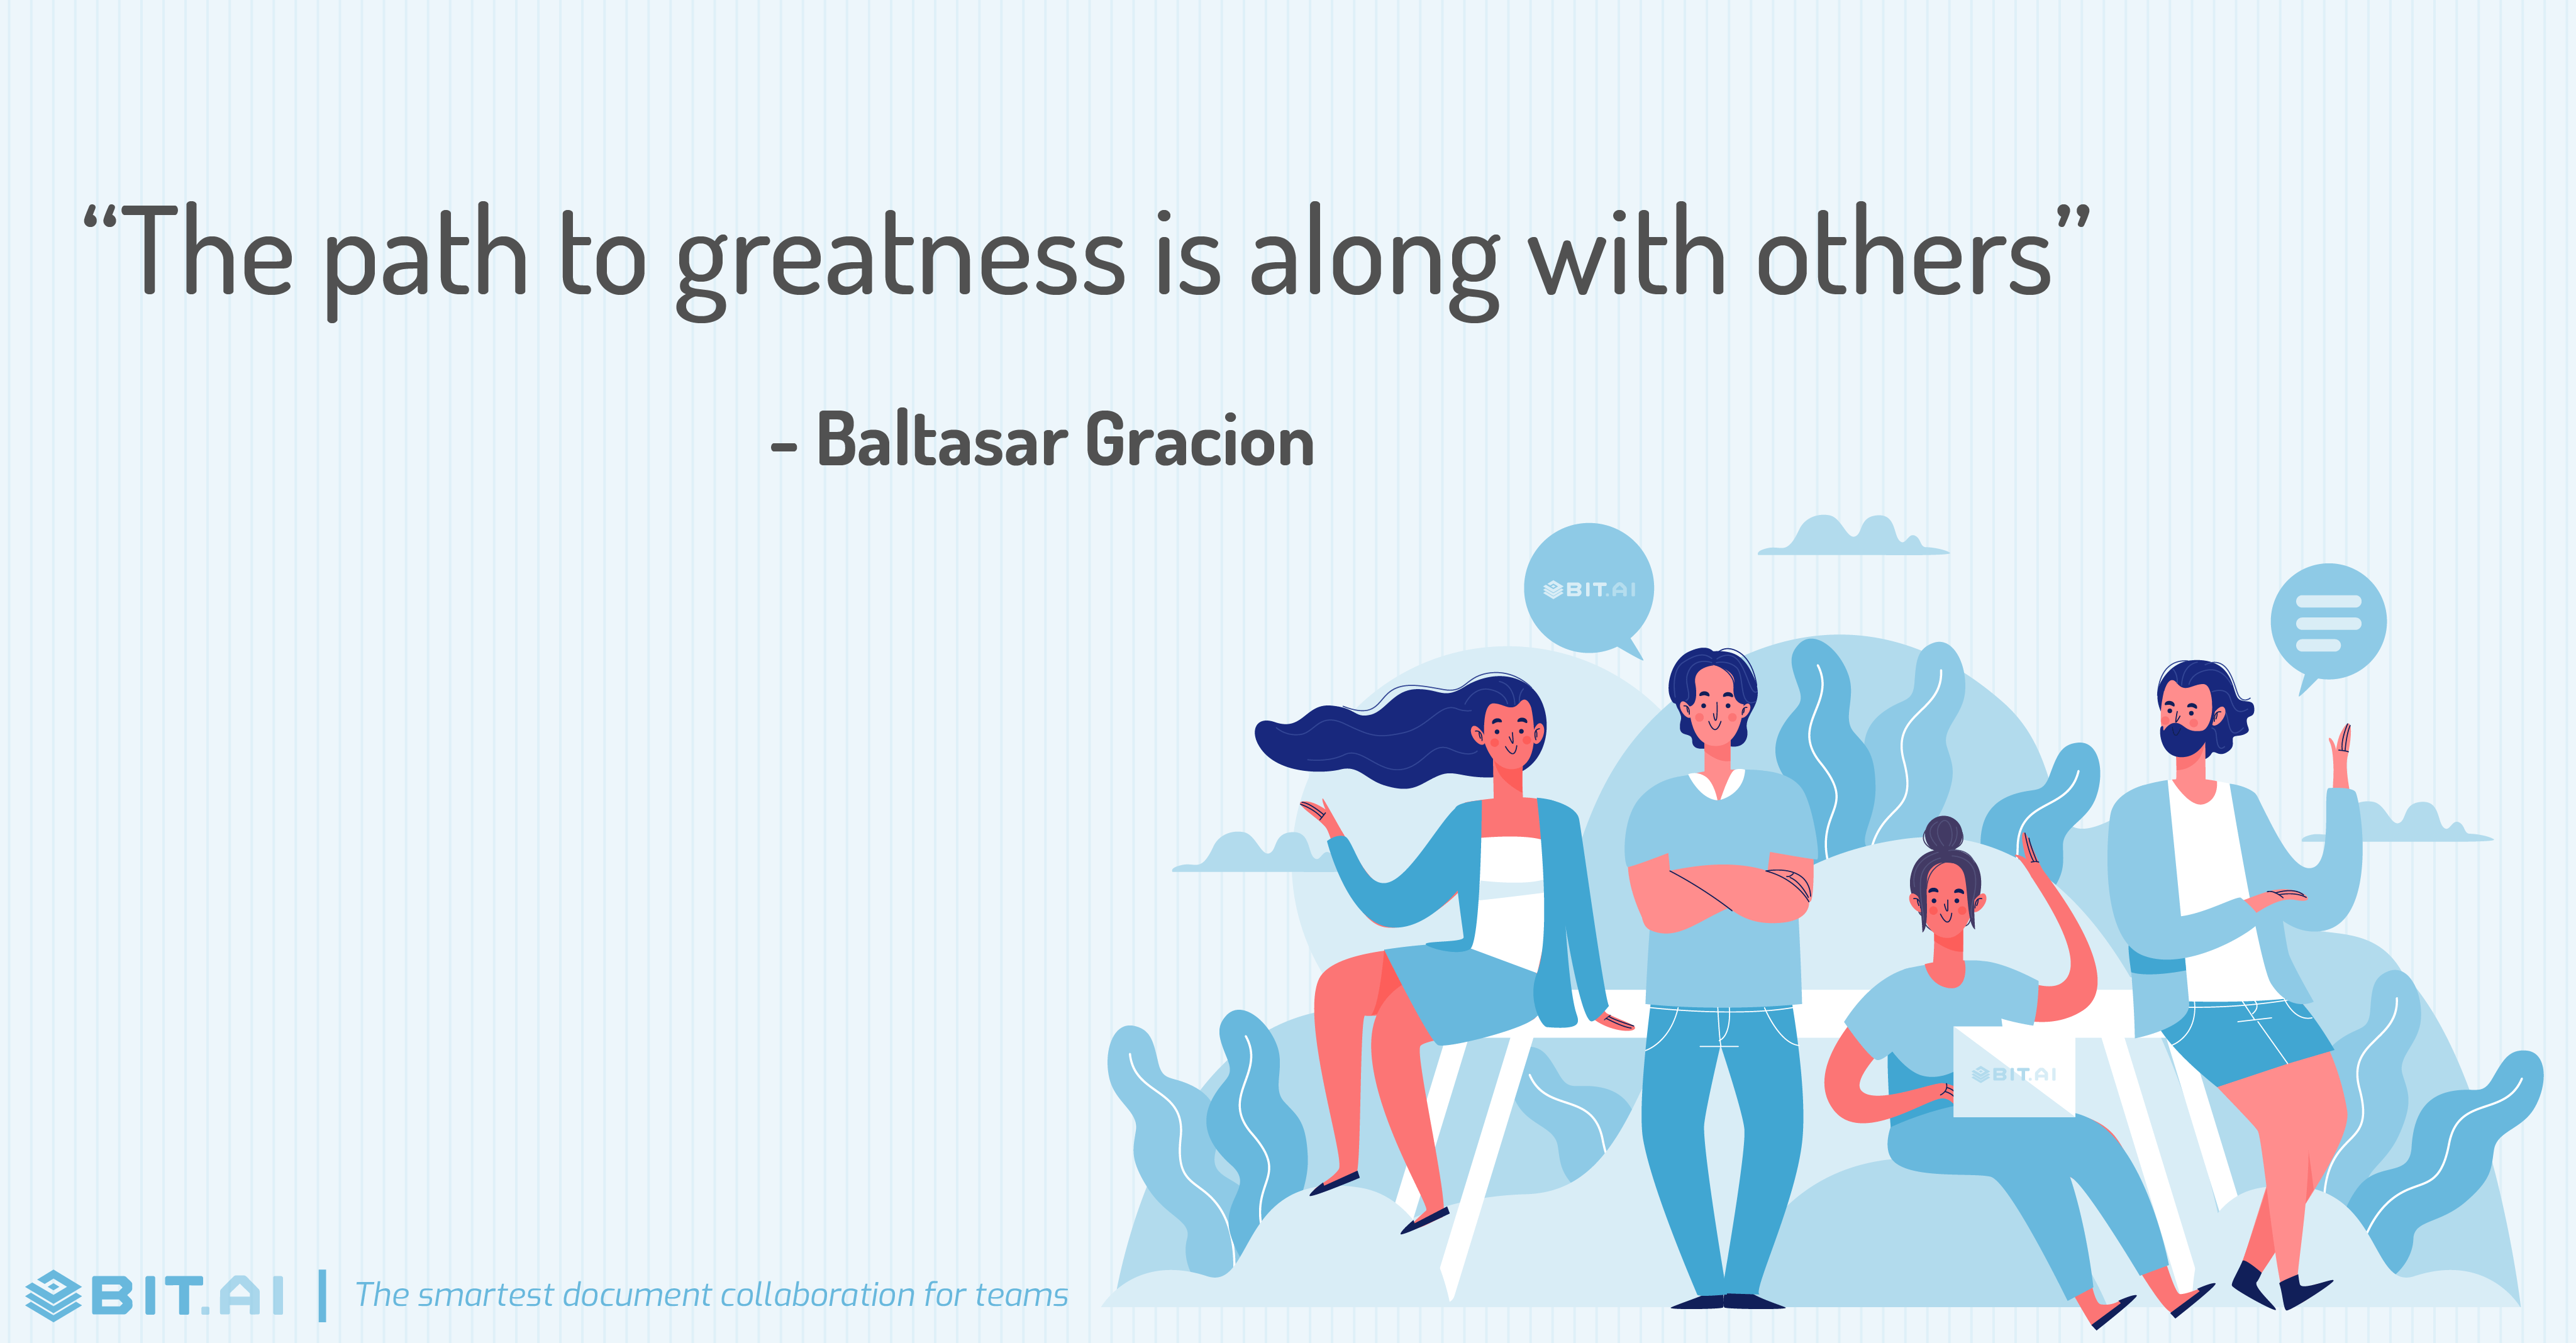 """The path to greatness is along with others"" - Baltasar Gracion"